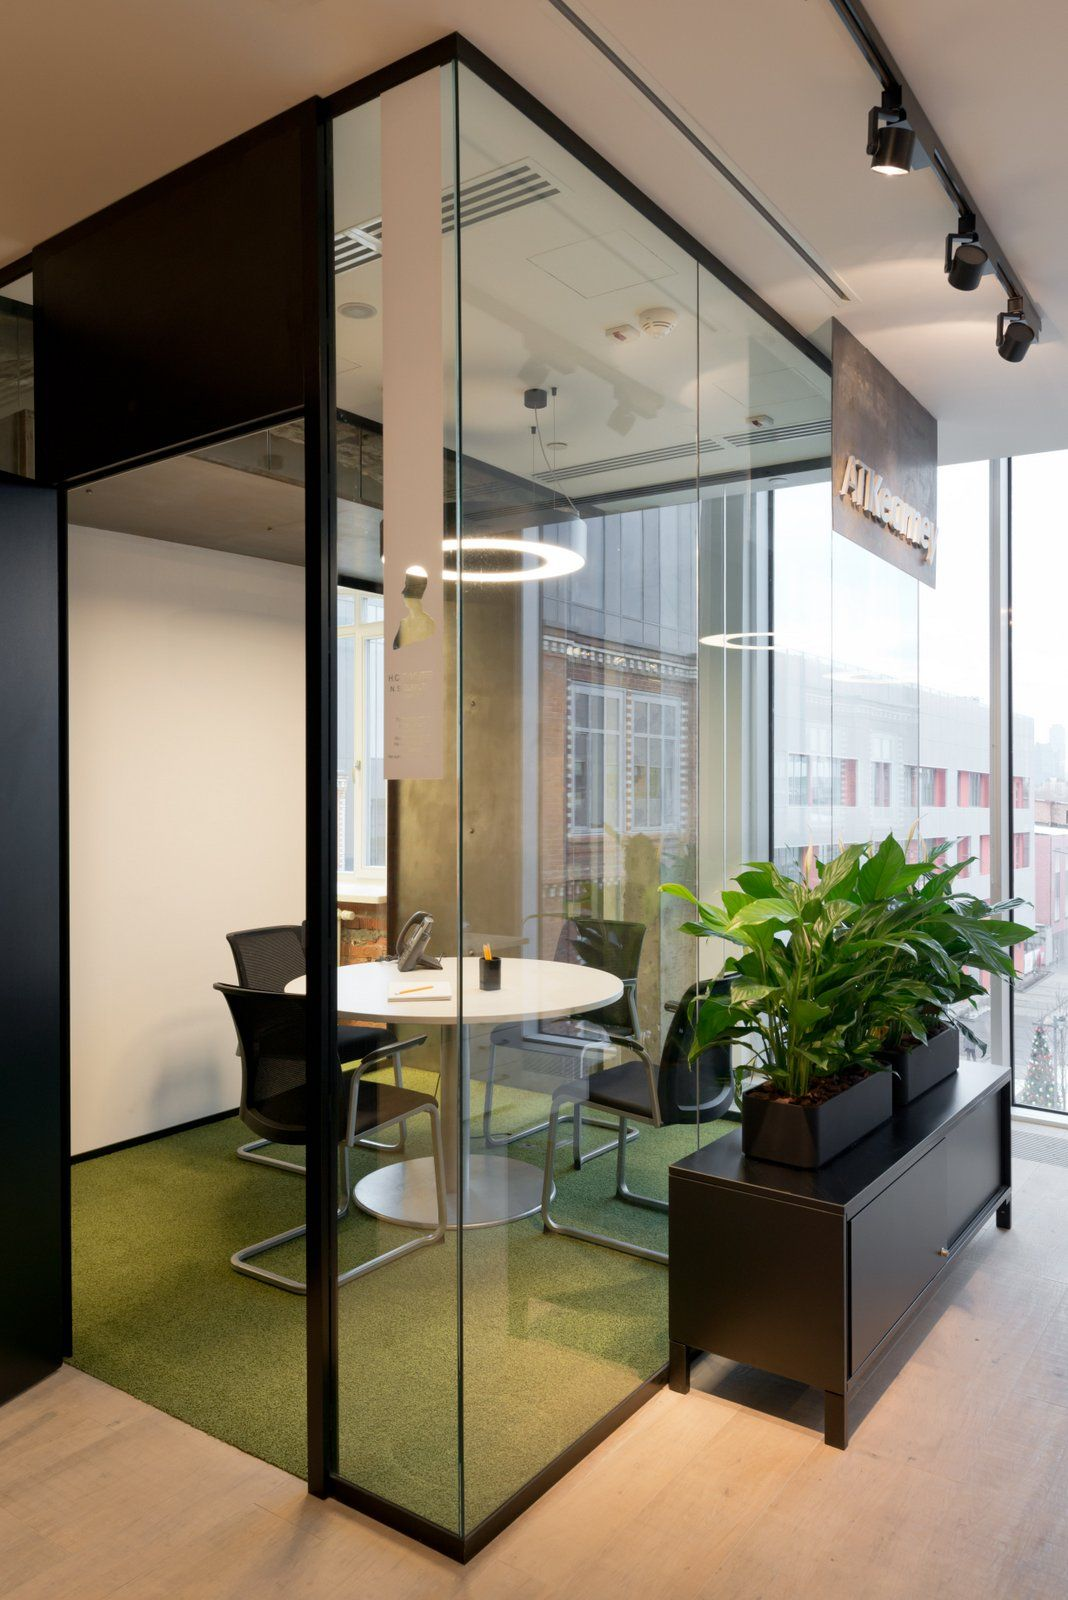 Office tour a t kearney offices moscow public places - Interior design schools in boston ...